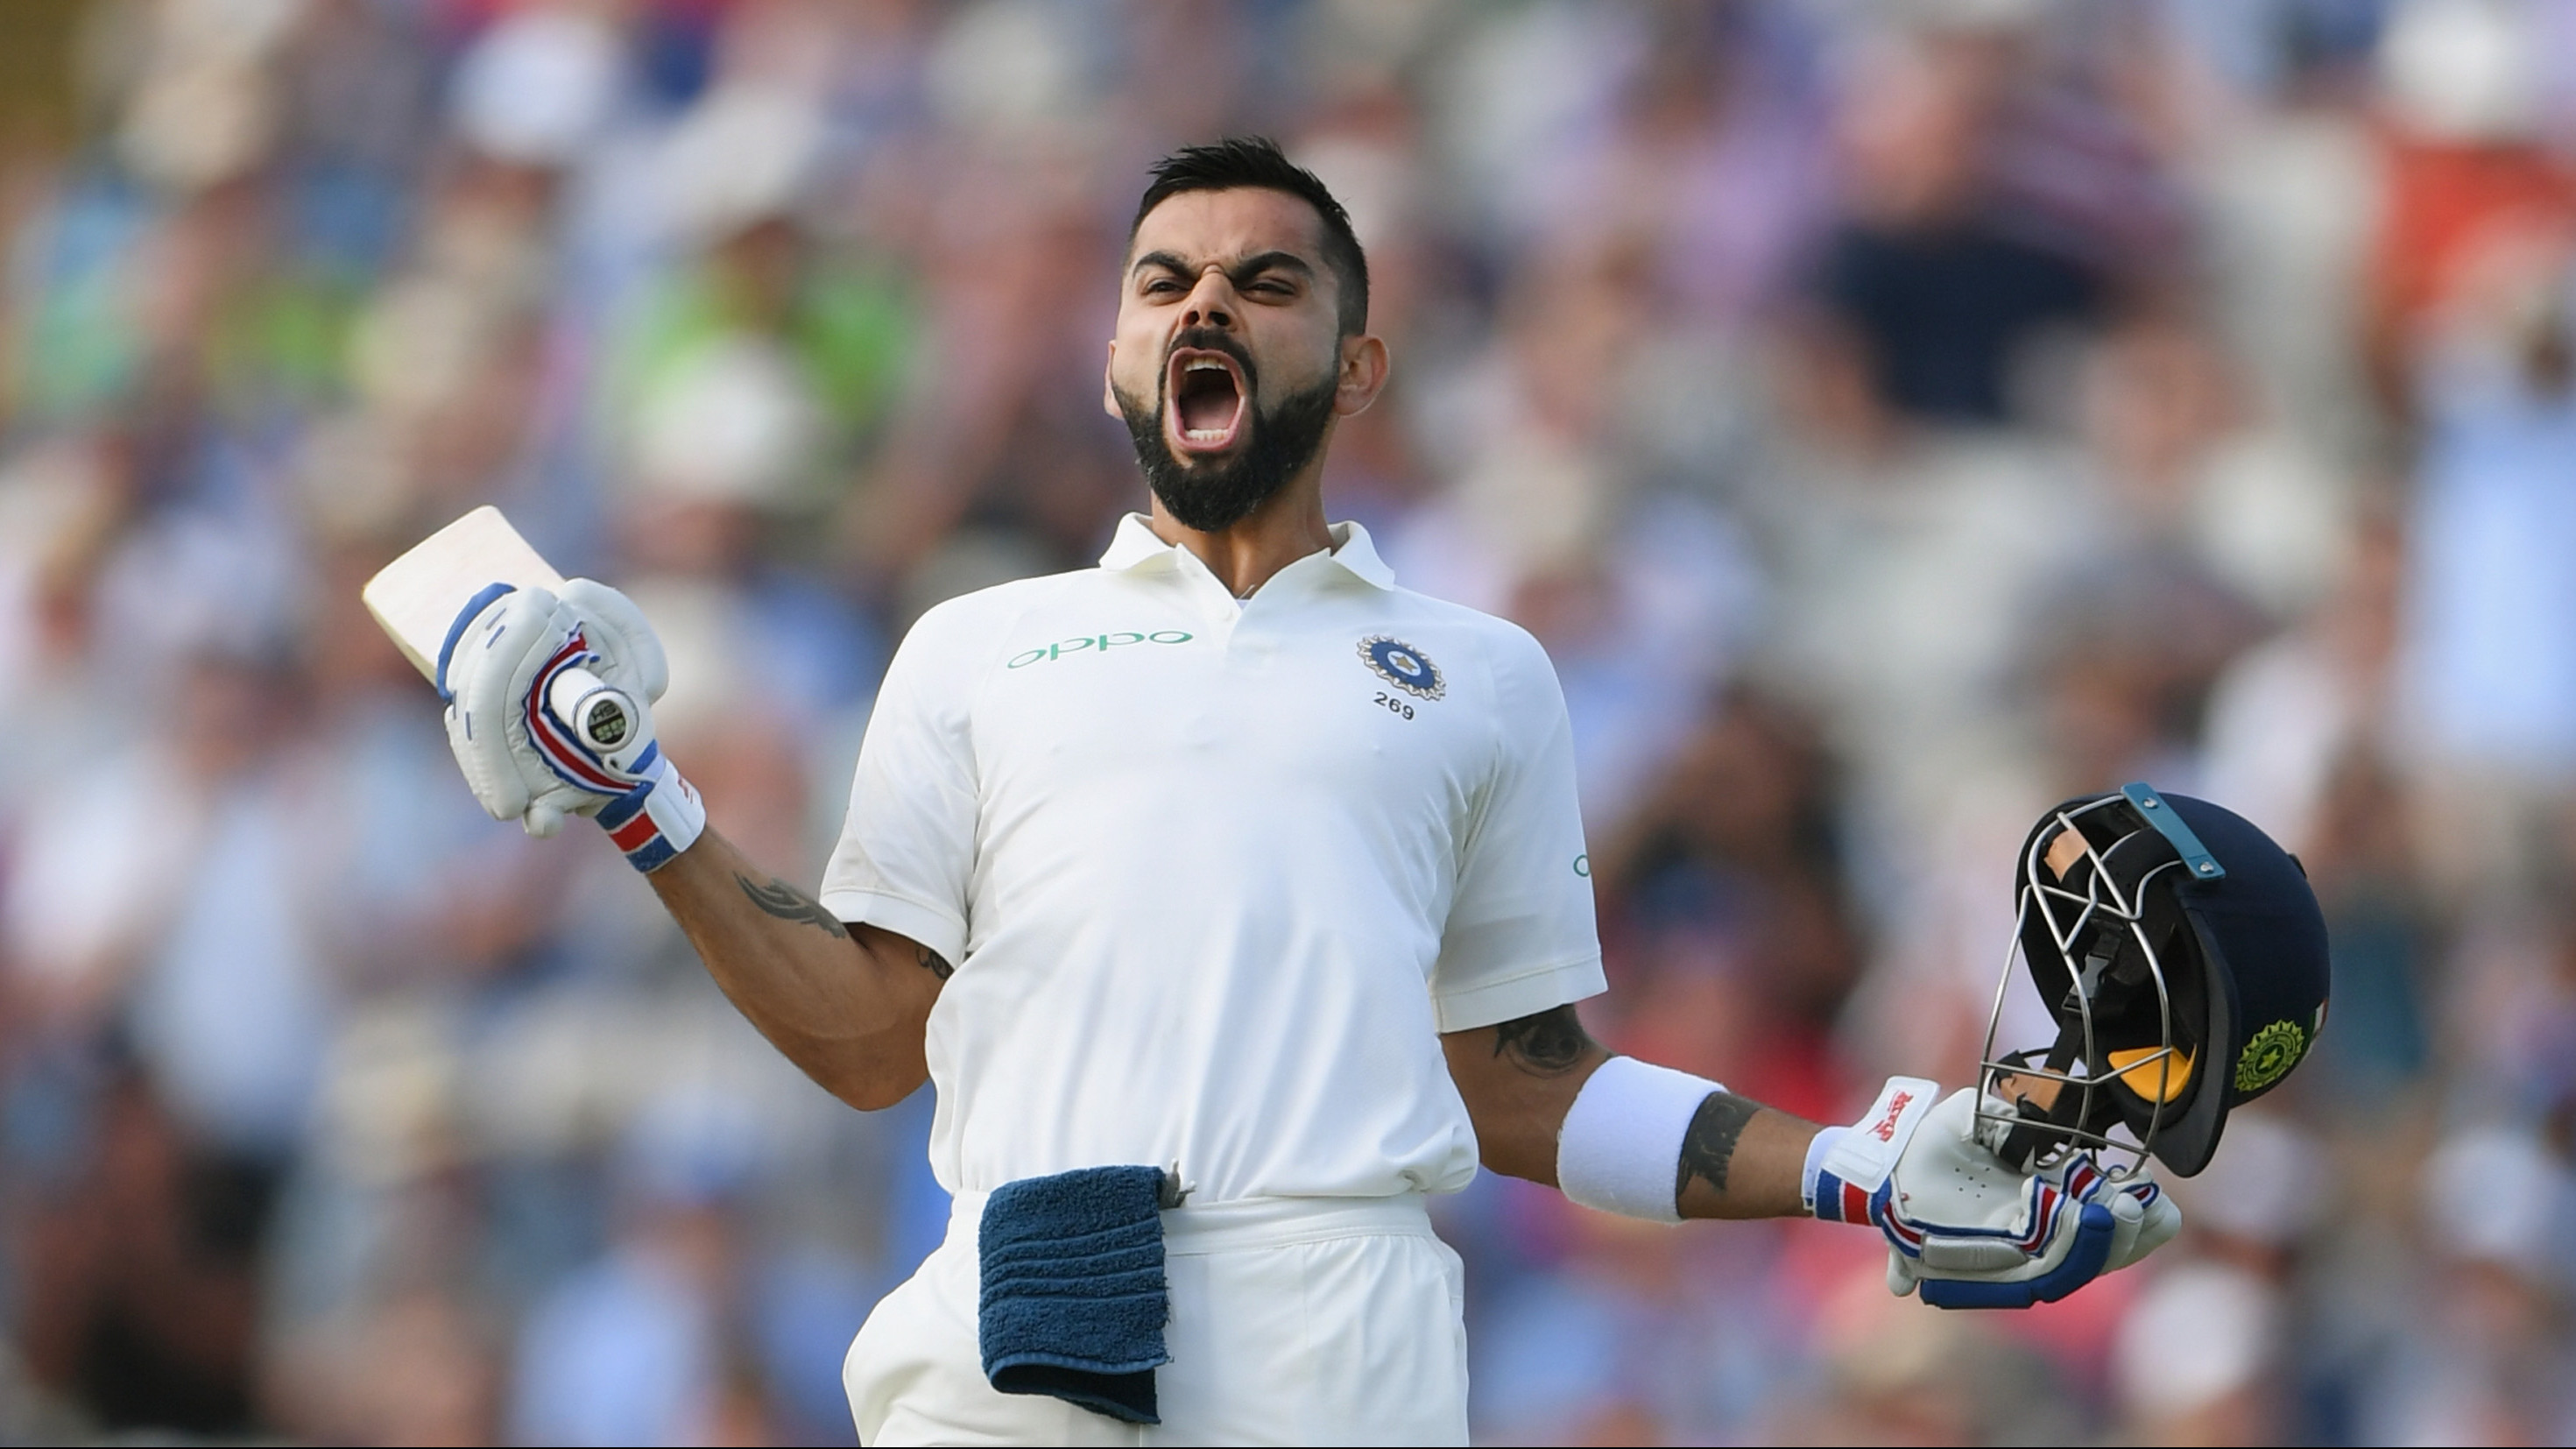 Herath retires ranked eighth, while Virat Kohli remains at top in the ICC Test Rankings